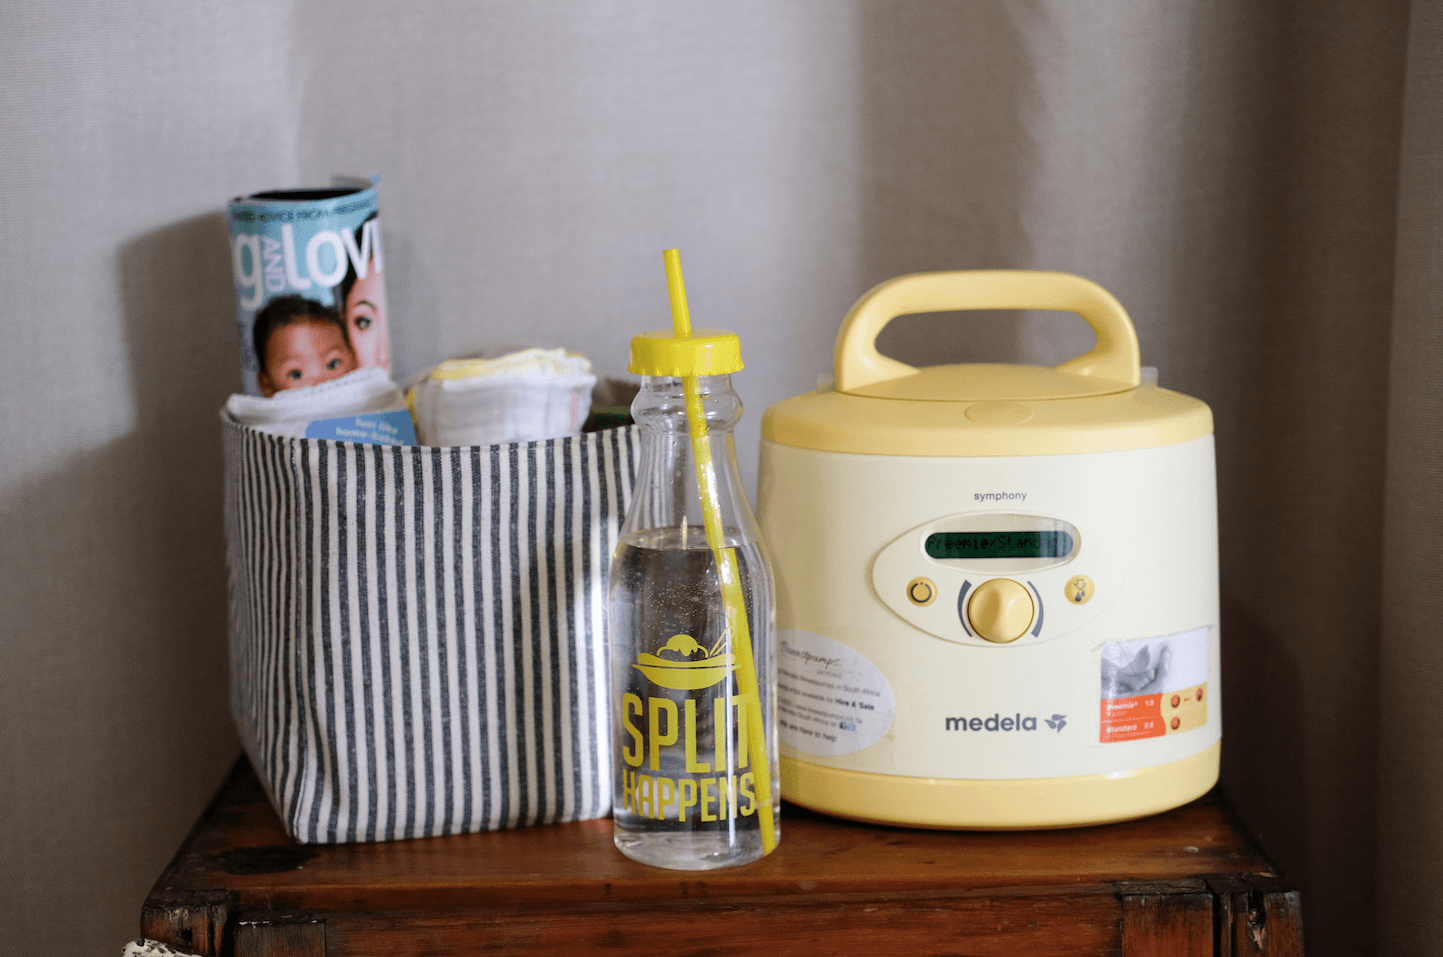 Breastfeeding: Setting up a pumping station